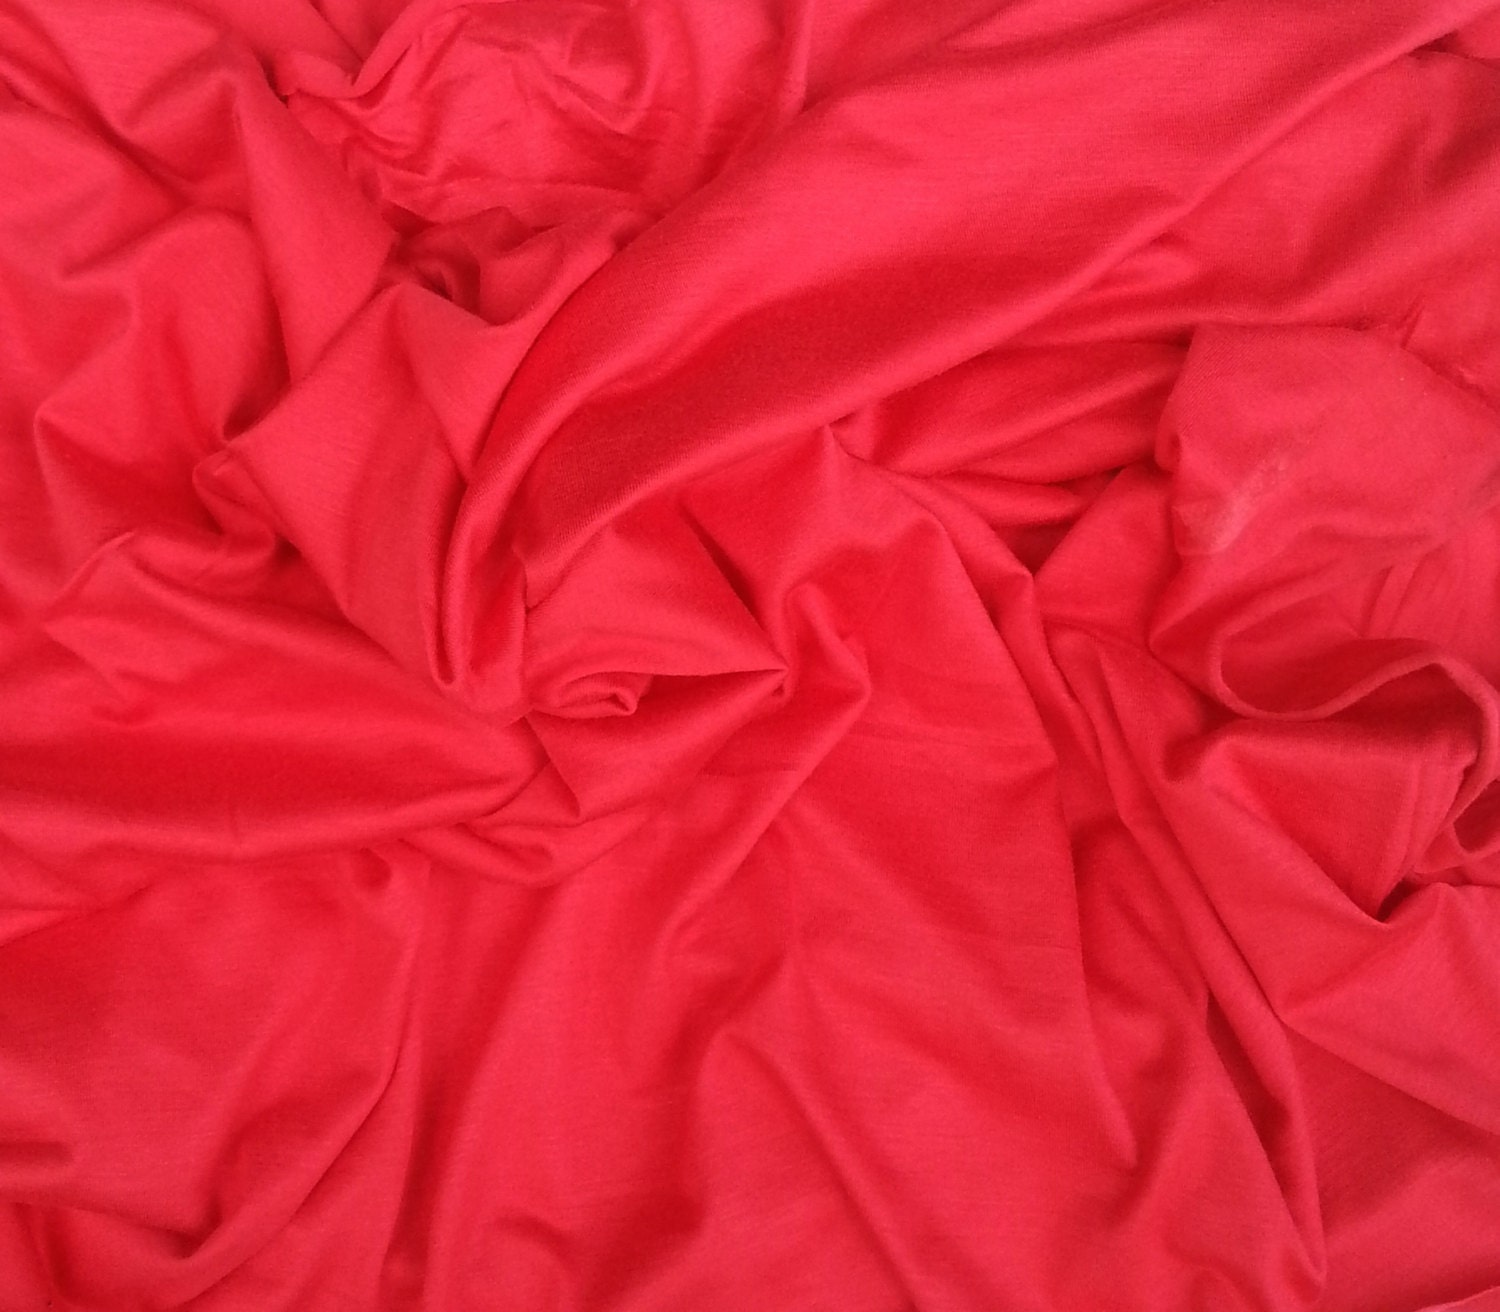 Rayon fabric stretch jersey knit fabric by the yard for Rayon fabric